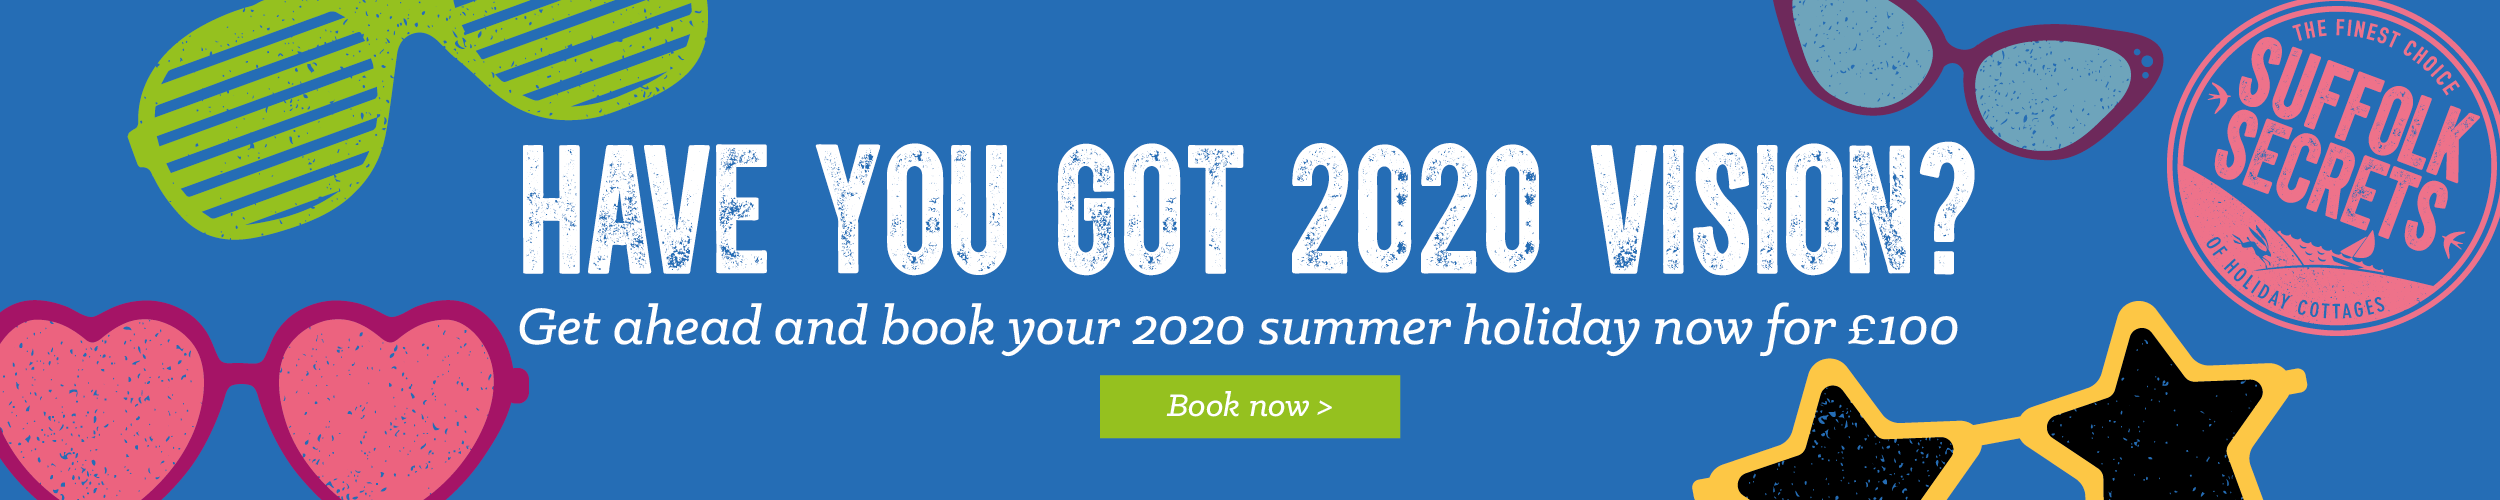 Book for 2020 for £100 deposit